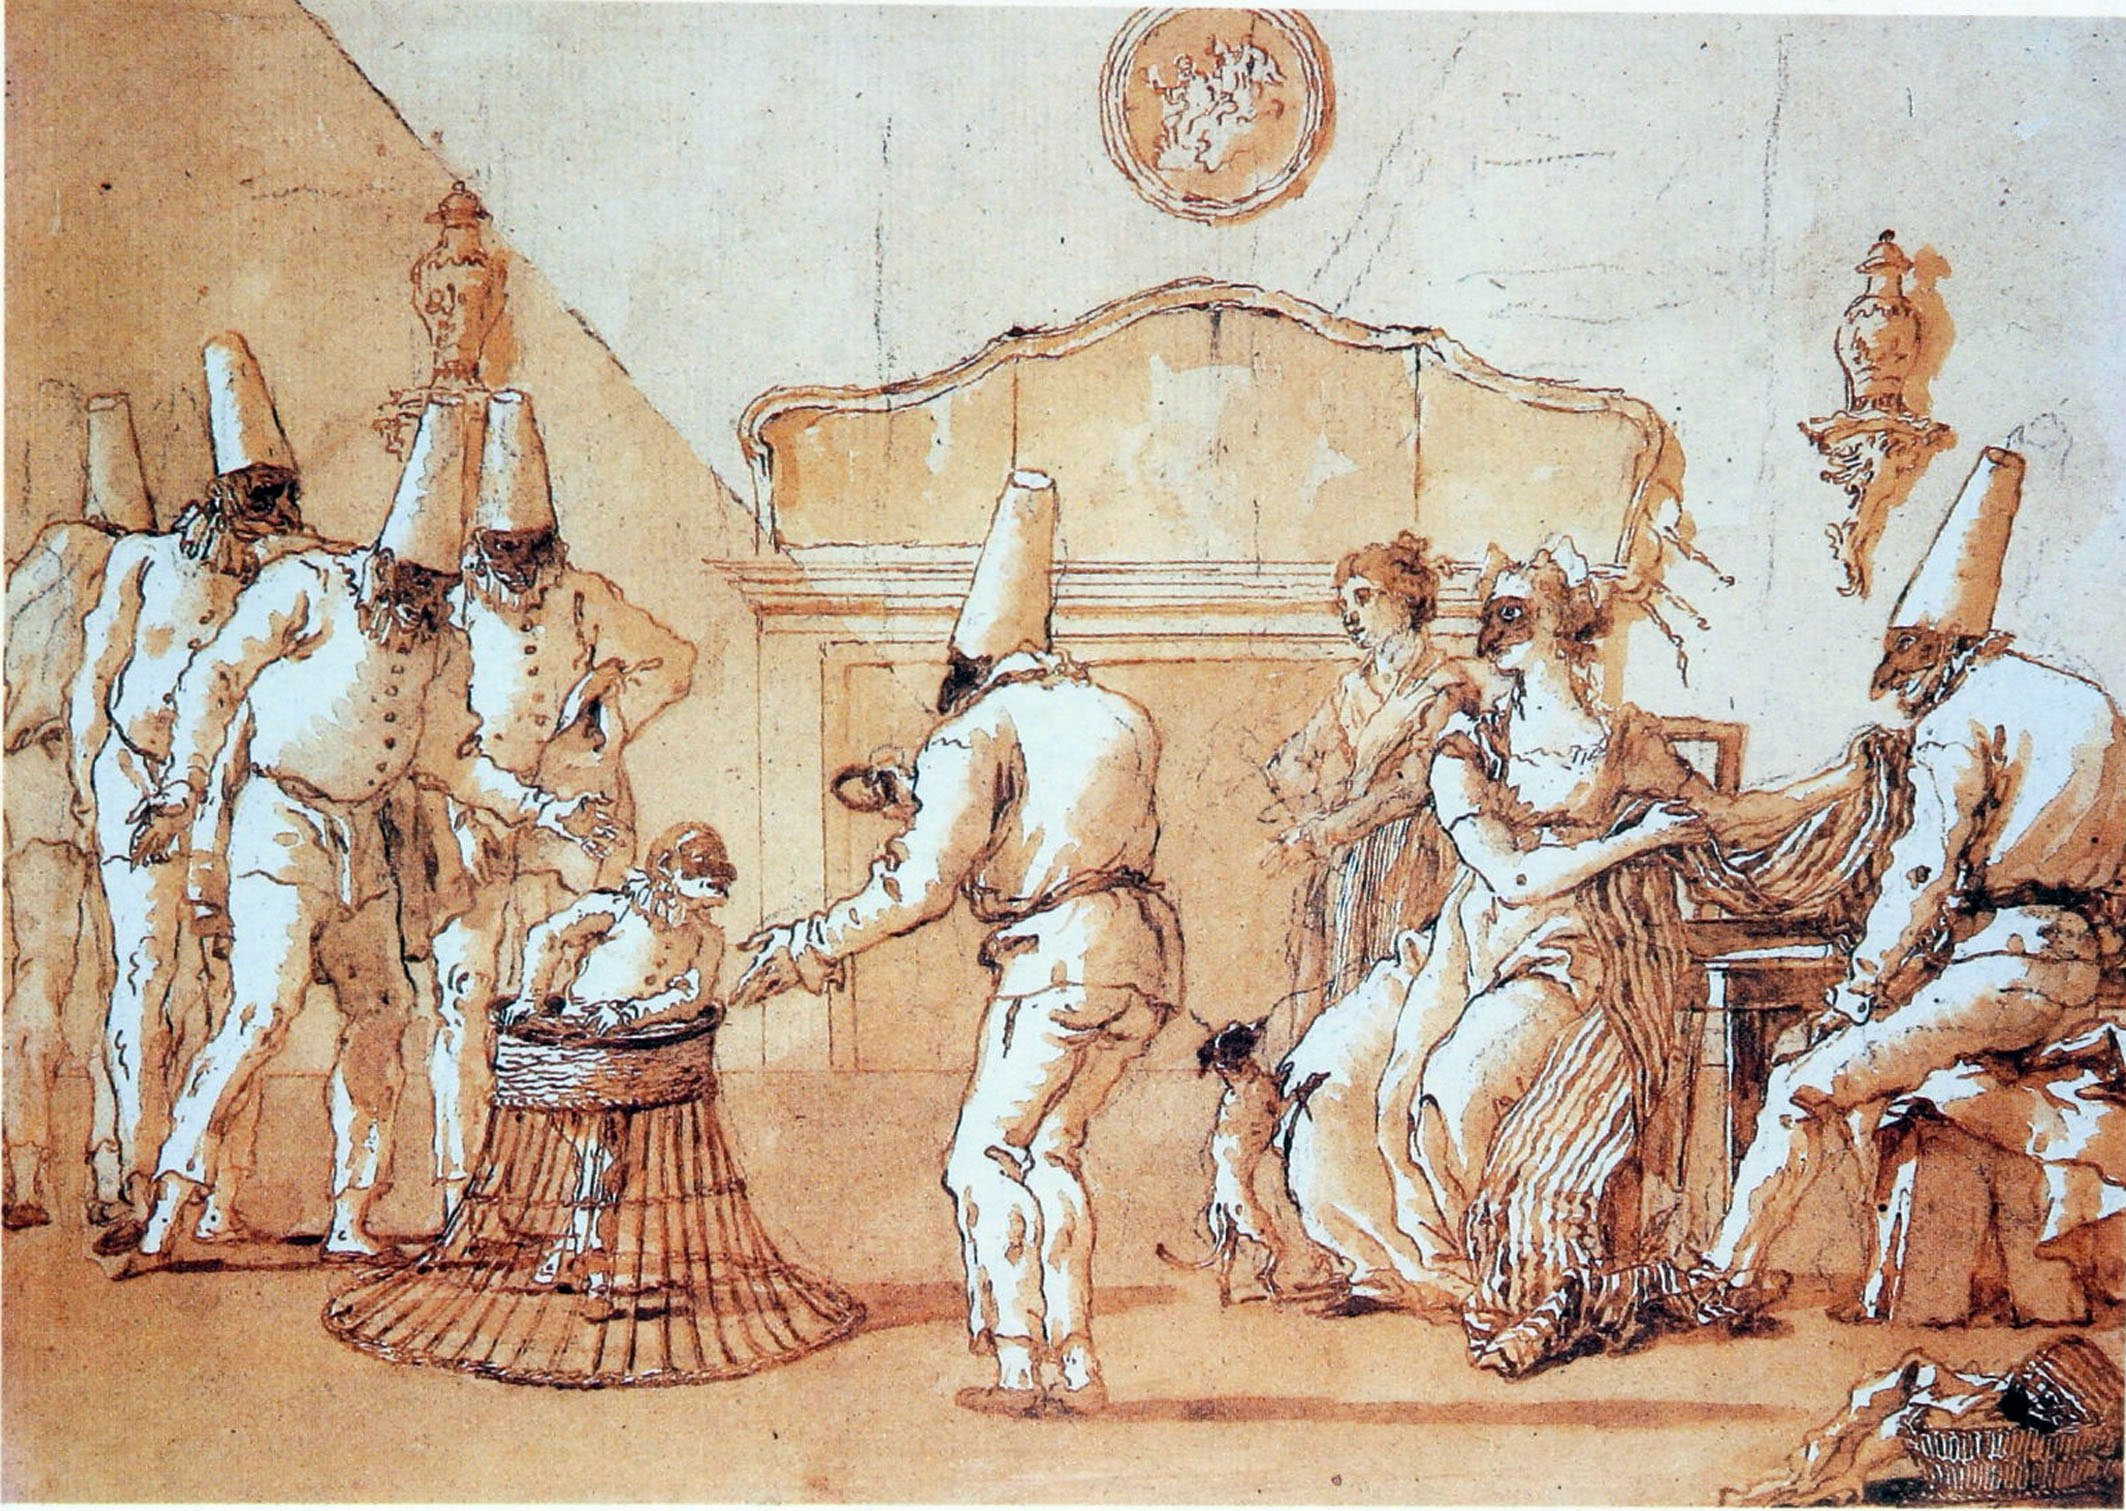 The Childhood of Punchinello, drawing by Domenico Tiepolo